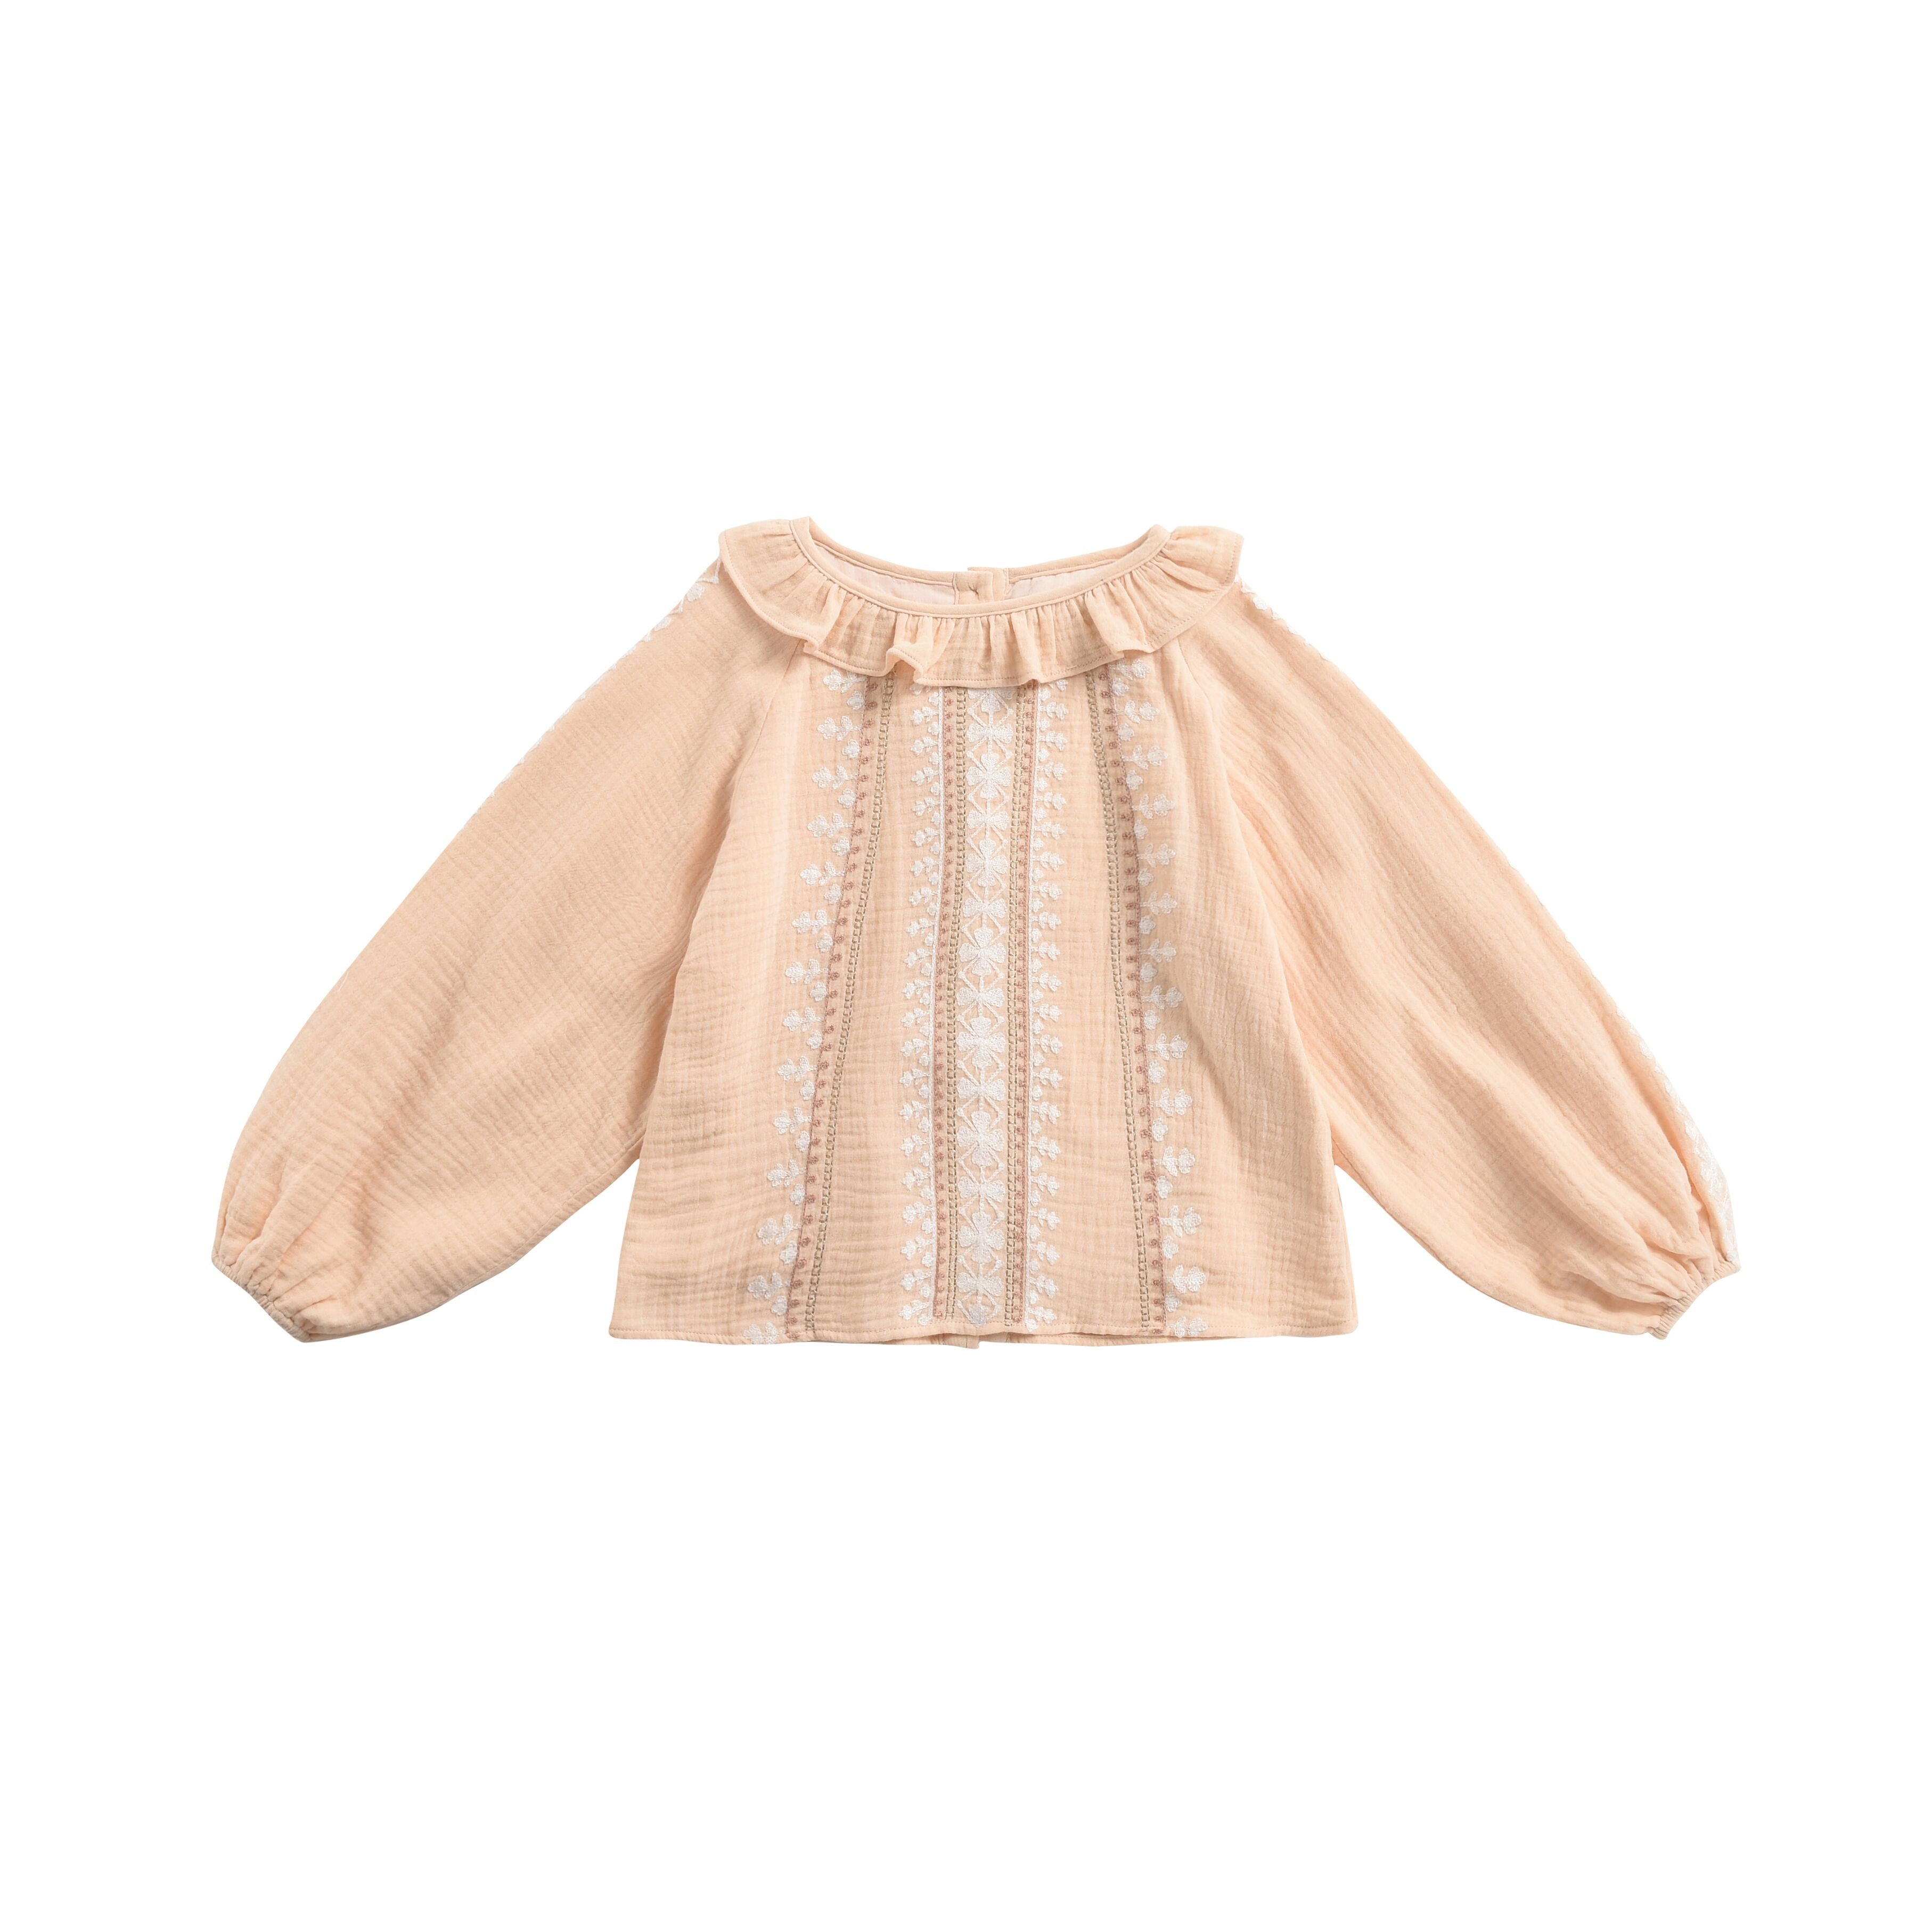 Blouse Nata Blush